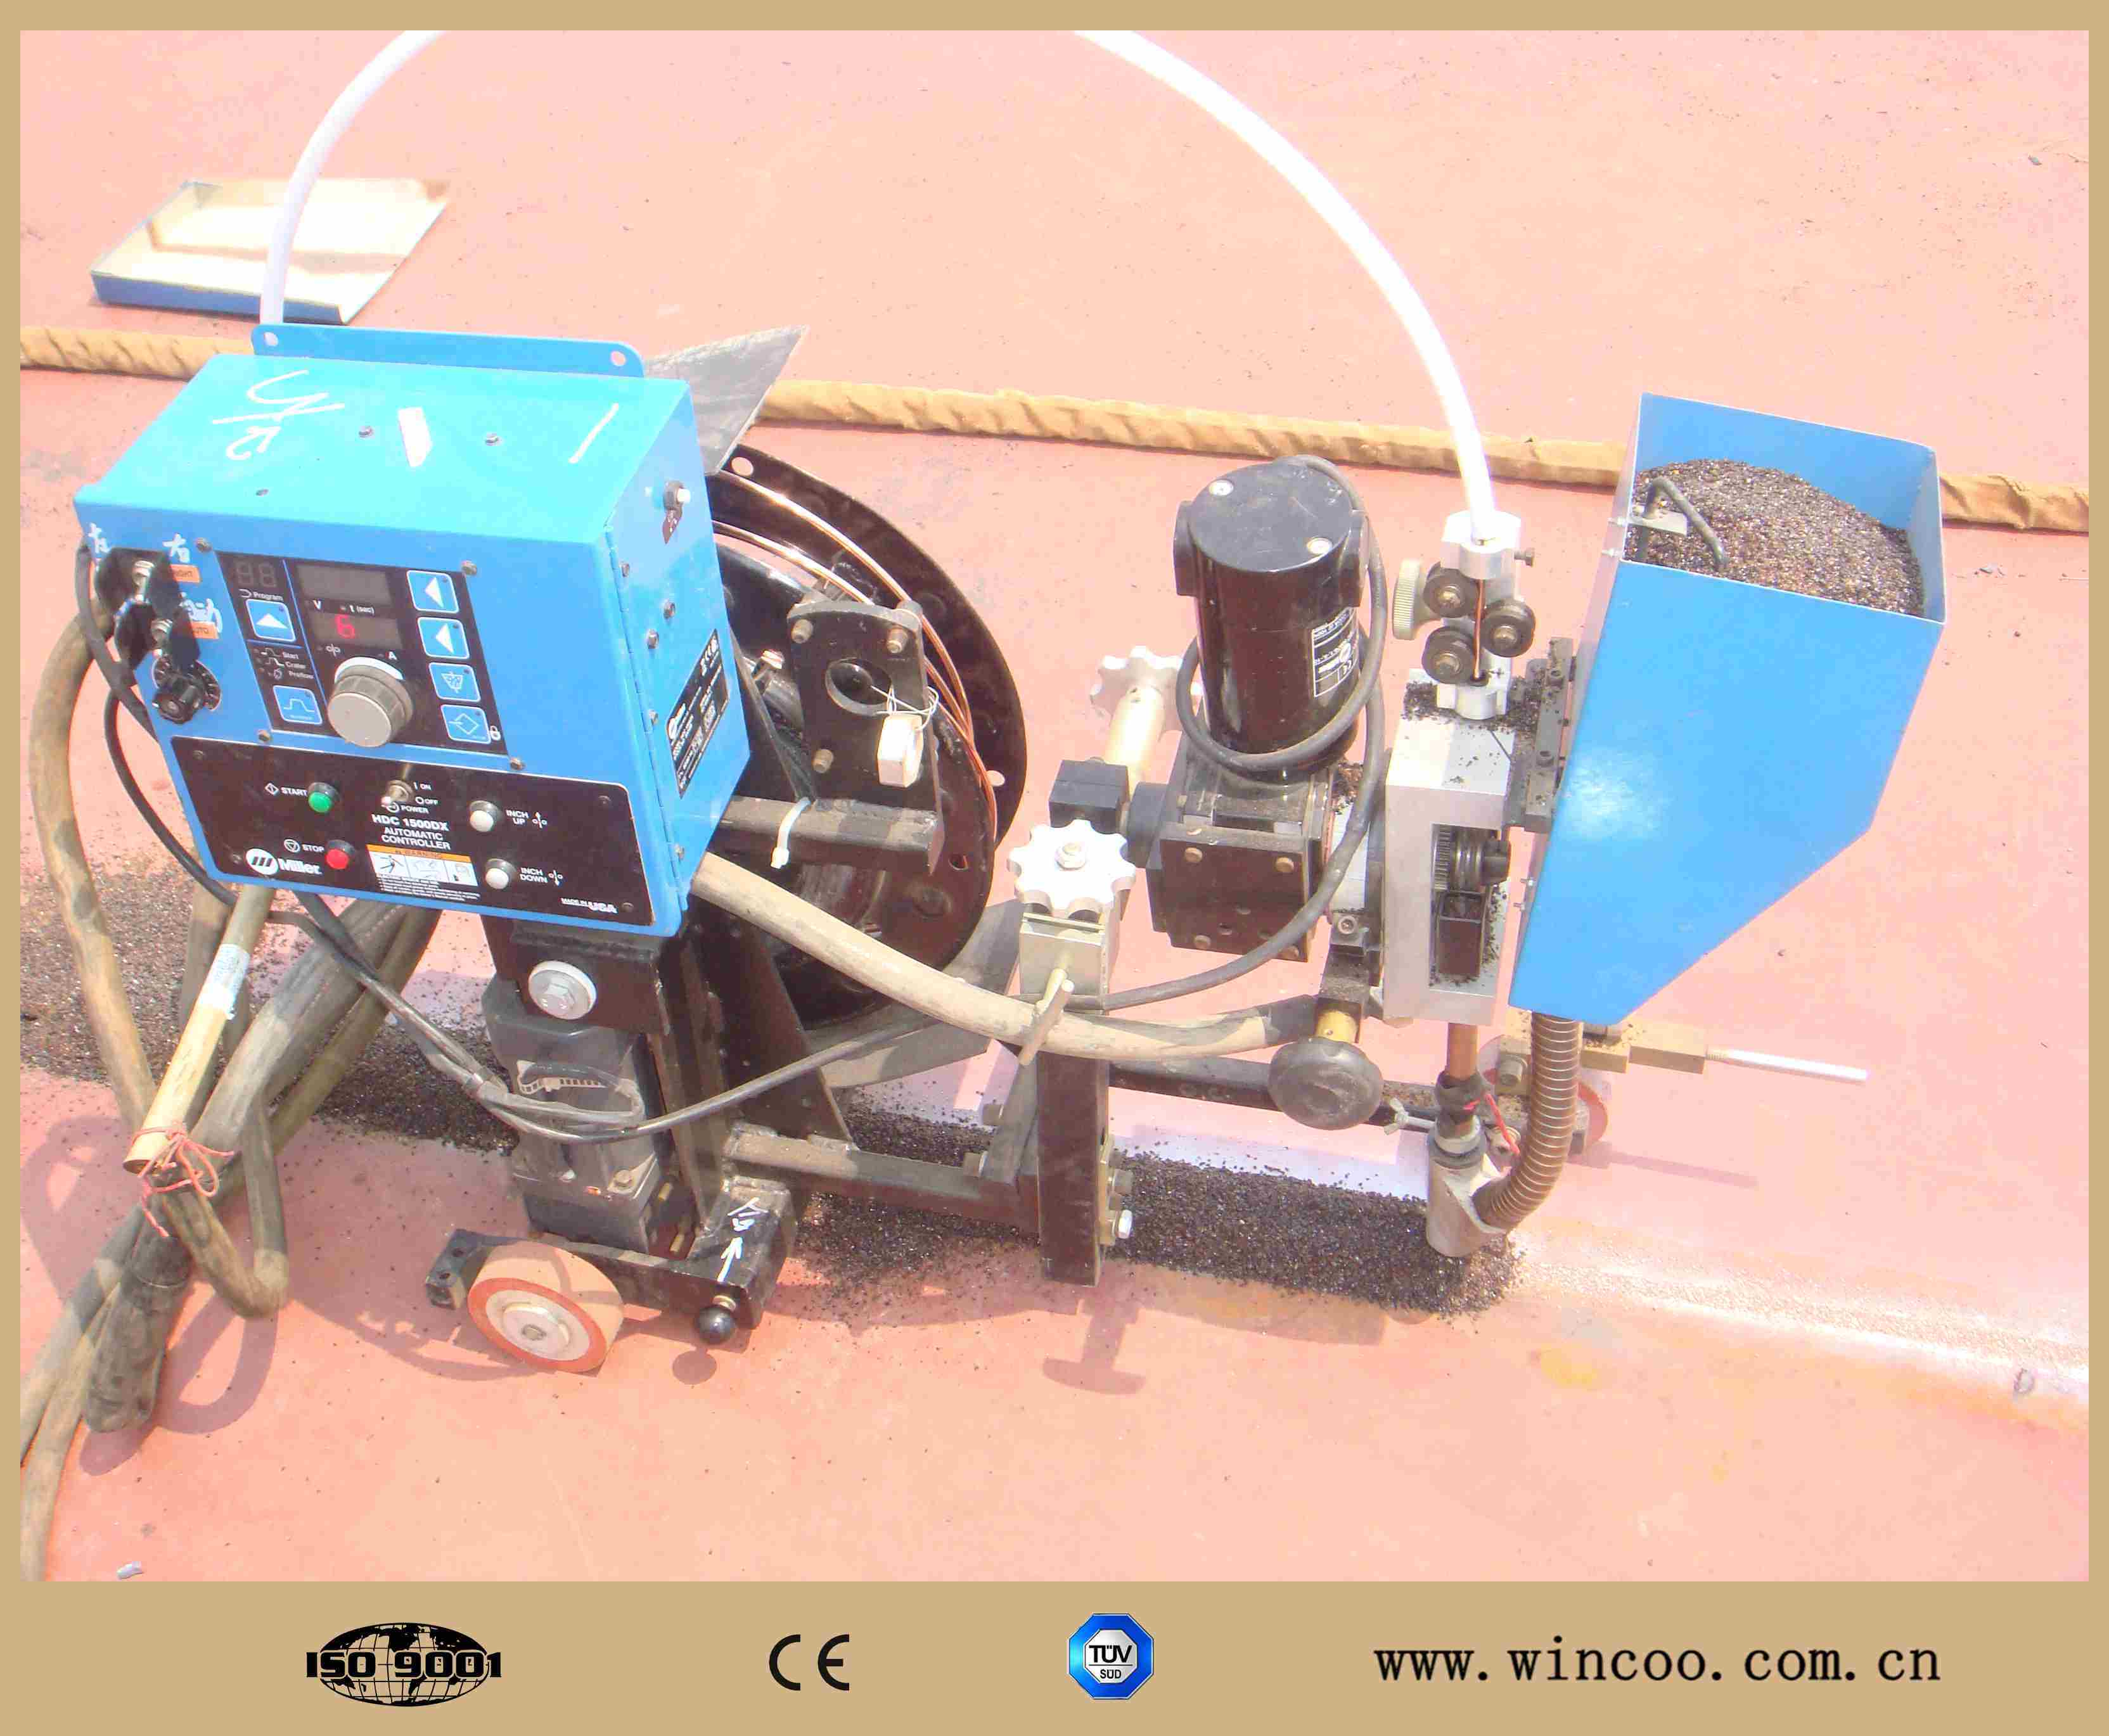 Tank Bottom Pate Welding Machine/ Automatic Welding Machine pictures & photos